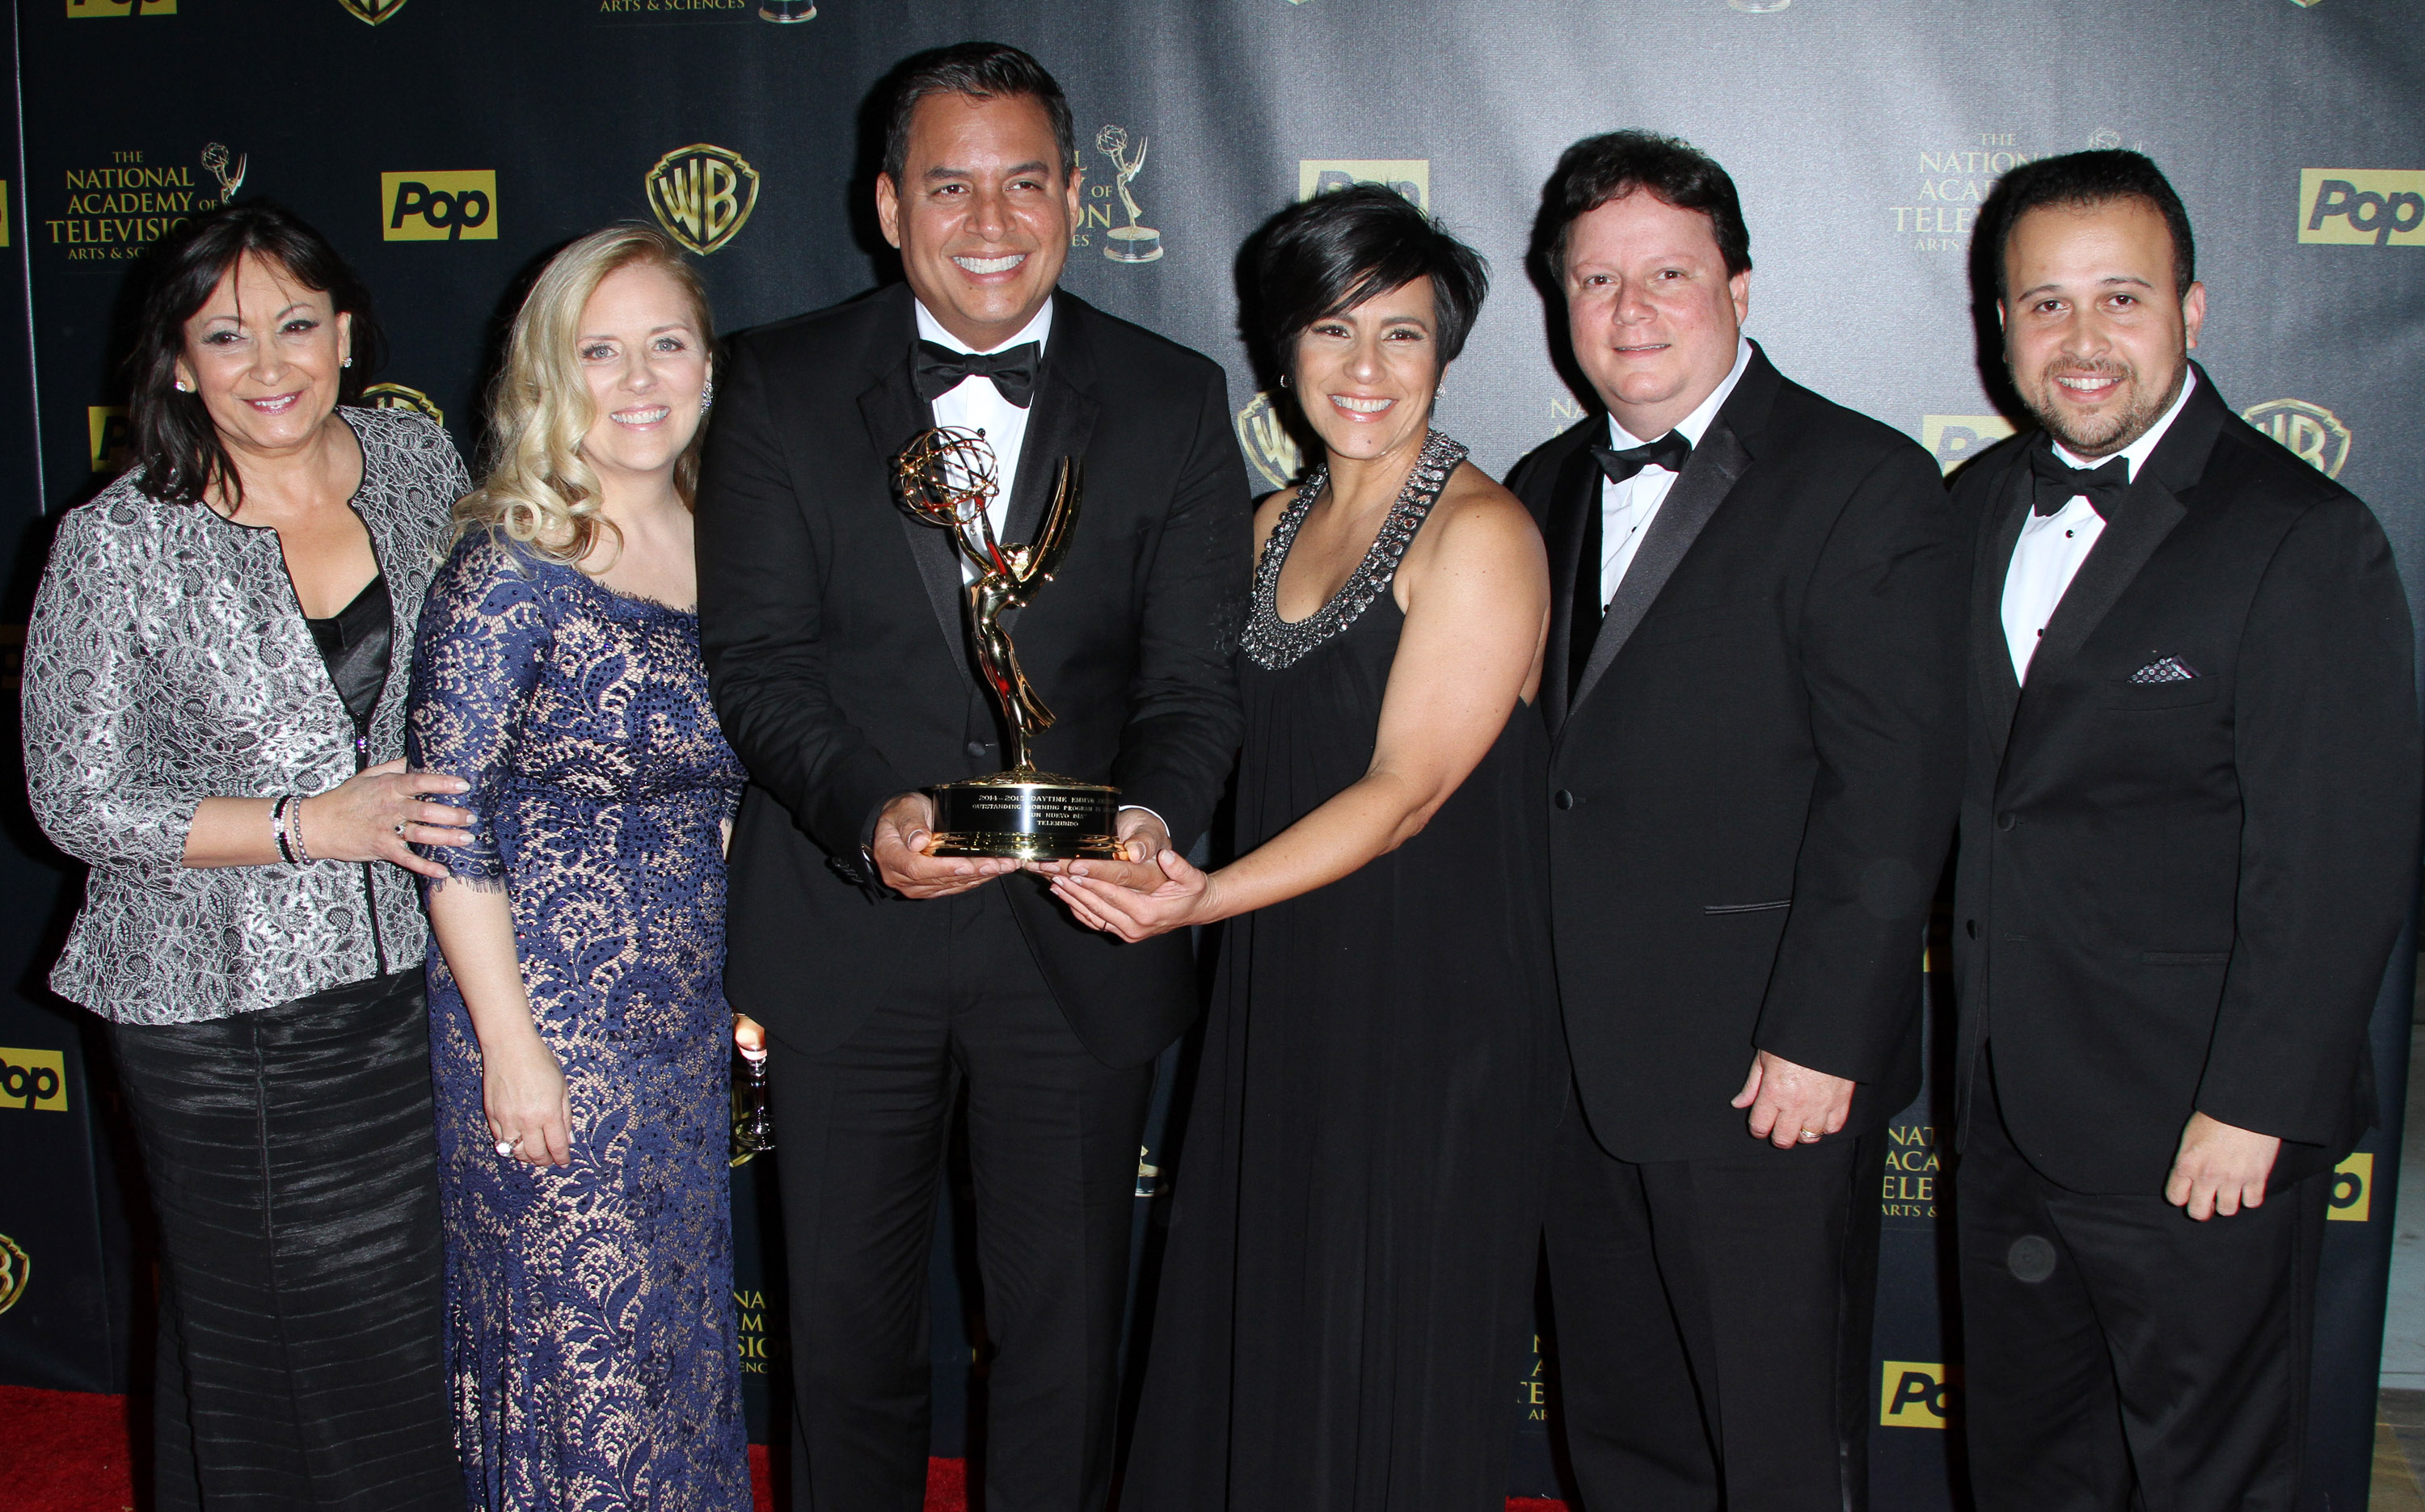 The 42nd Daytime Emmy Awards